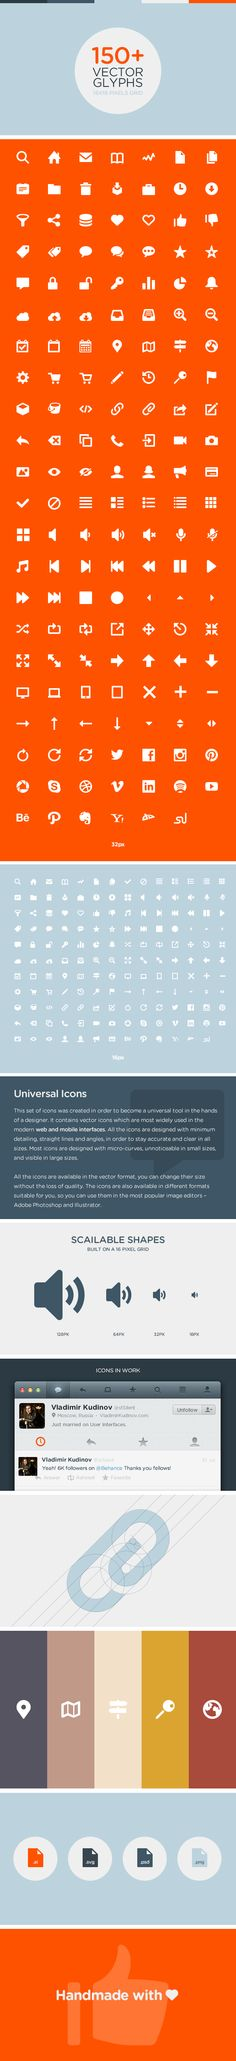 Unicons - Universal vector icons for mobile and web by Sergey Shmidt, via Behance